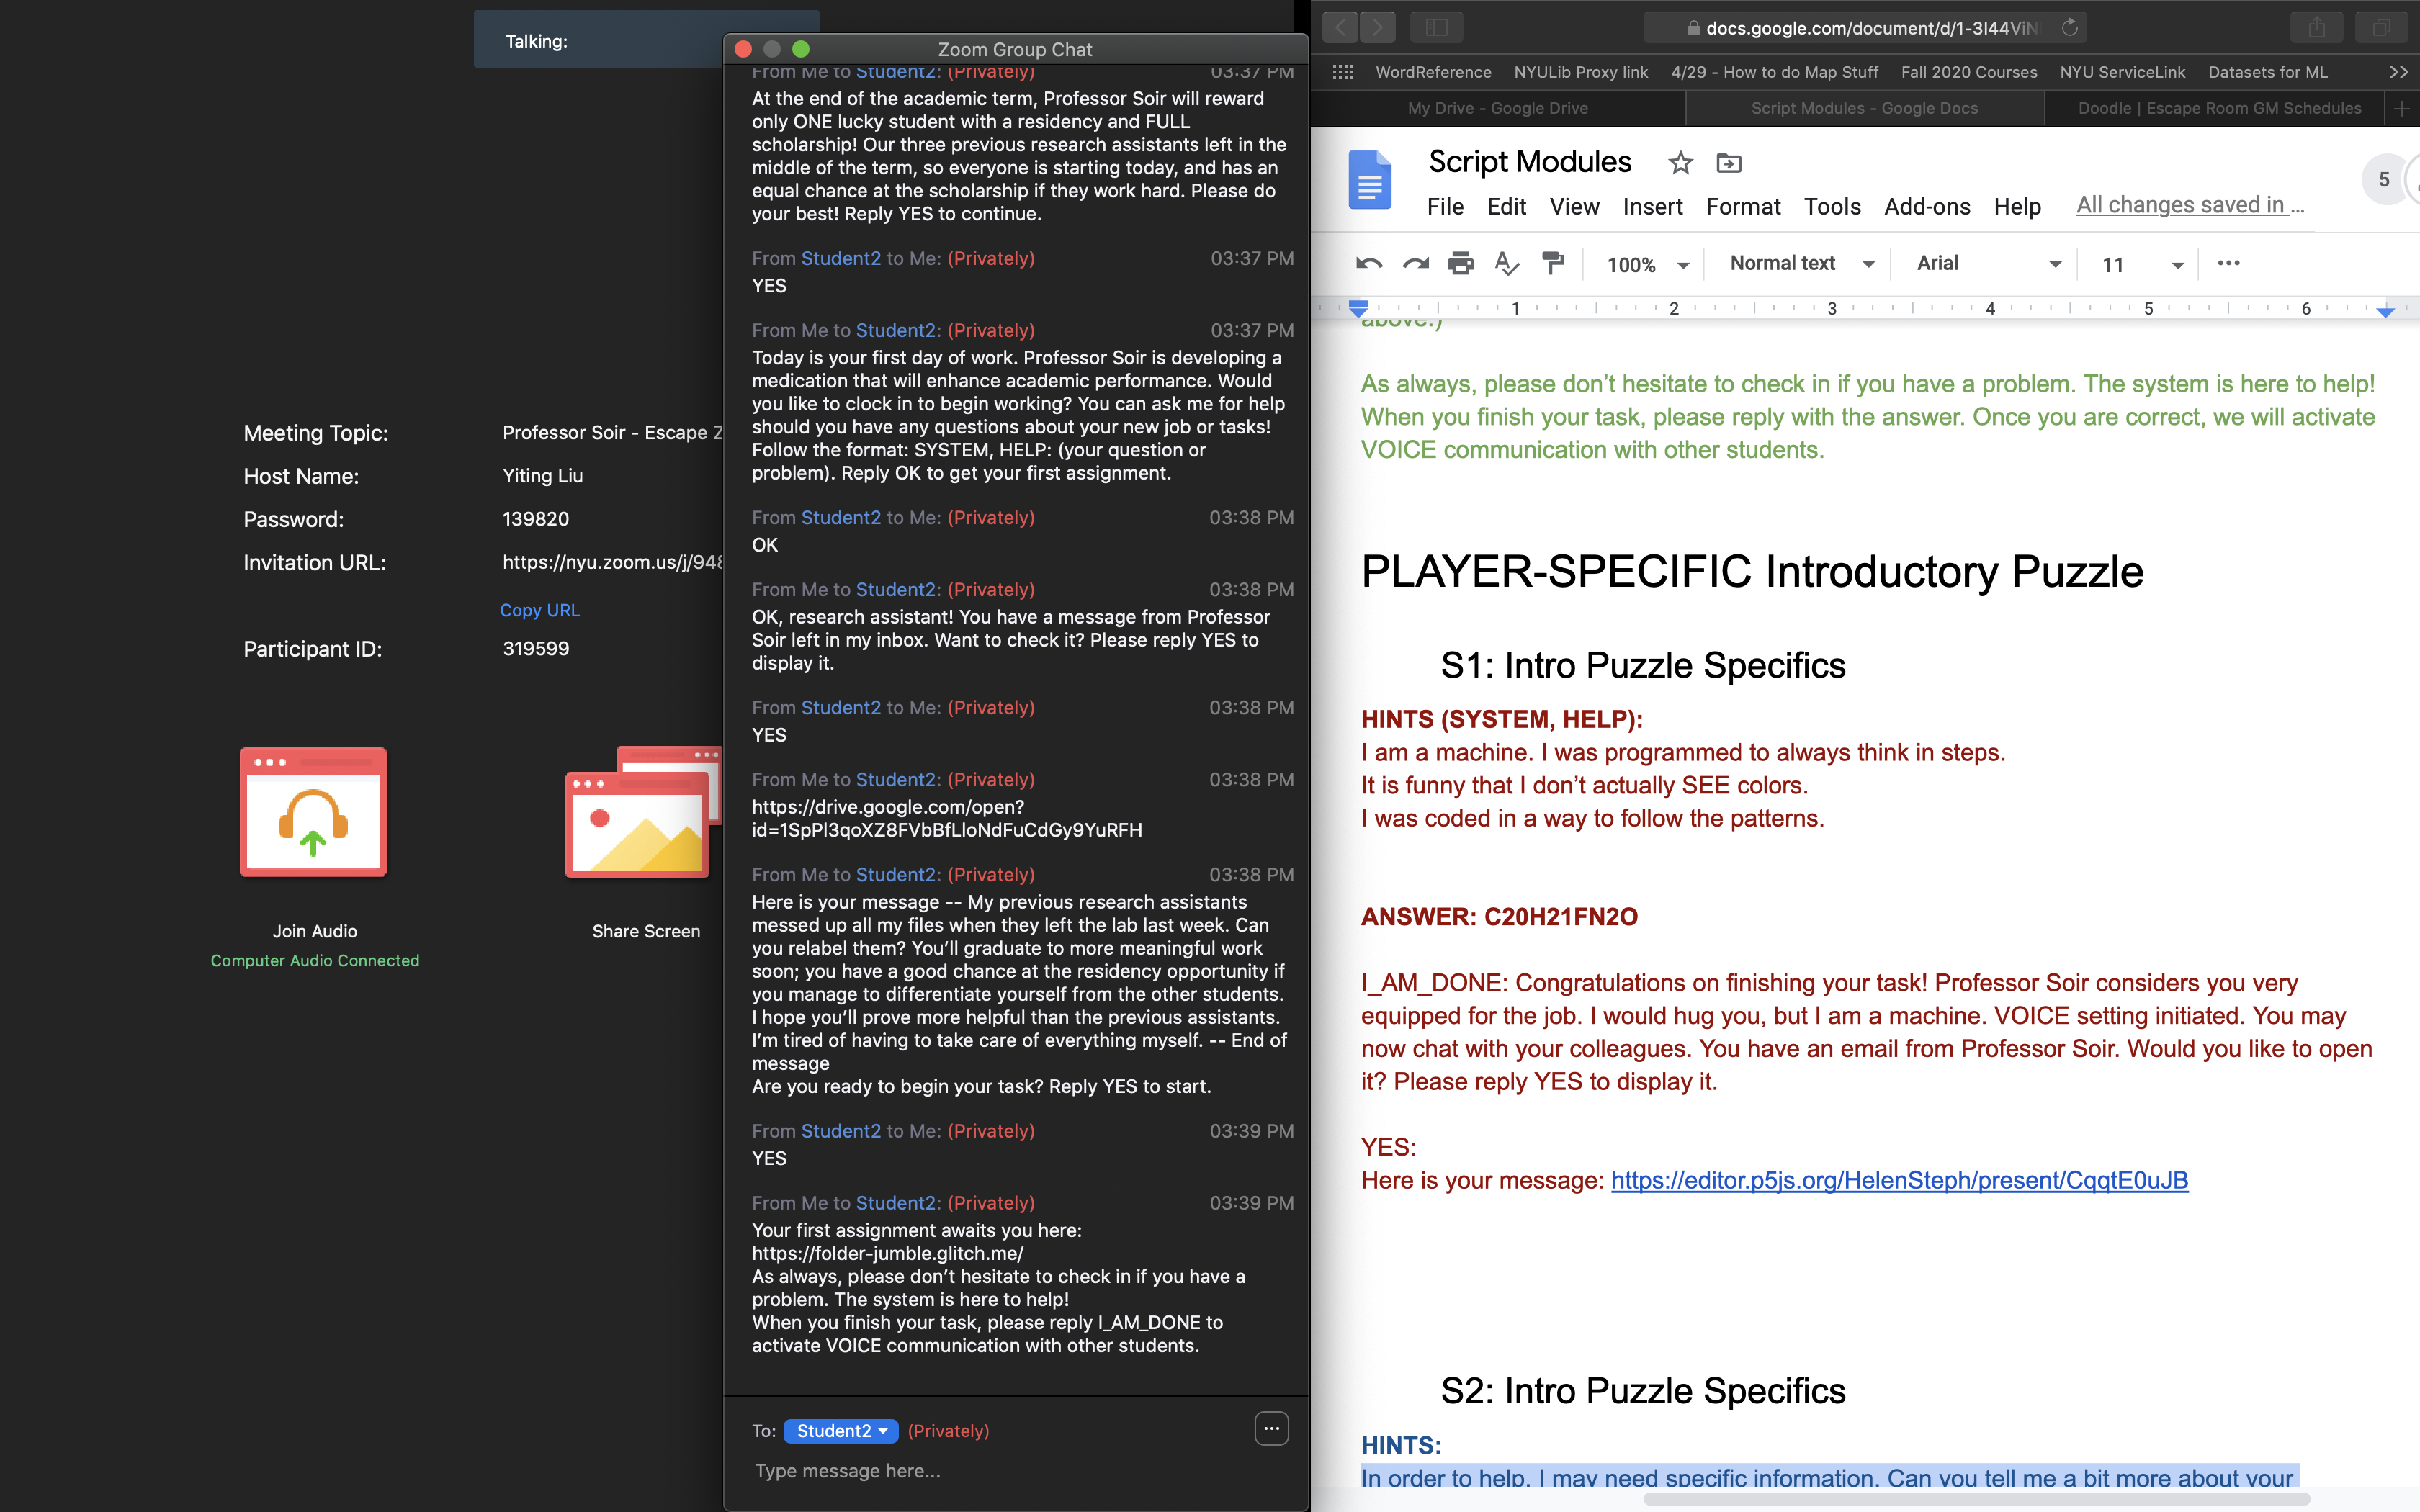 Screen Shot of my Screen while GMing; Escape Zoom on the left. Google Doc with Script Modules on the Right